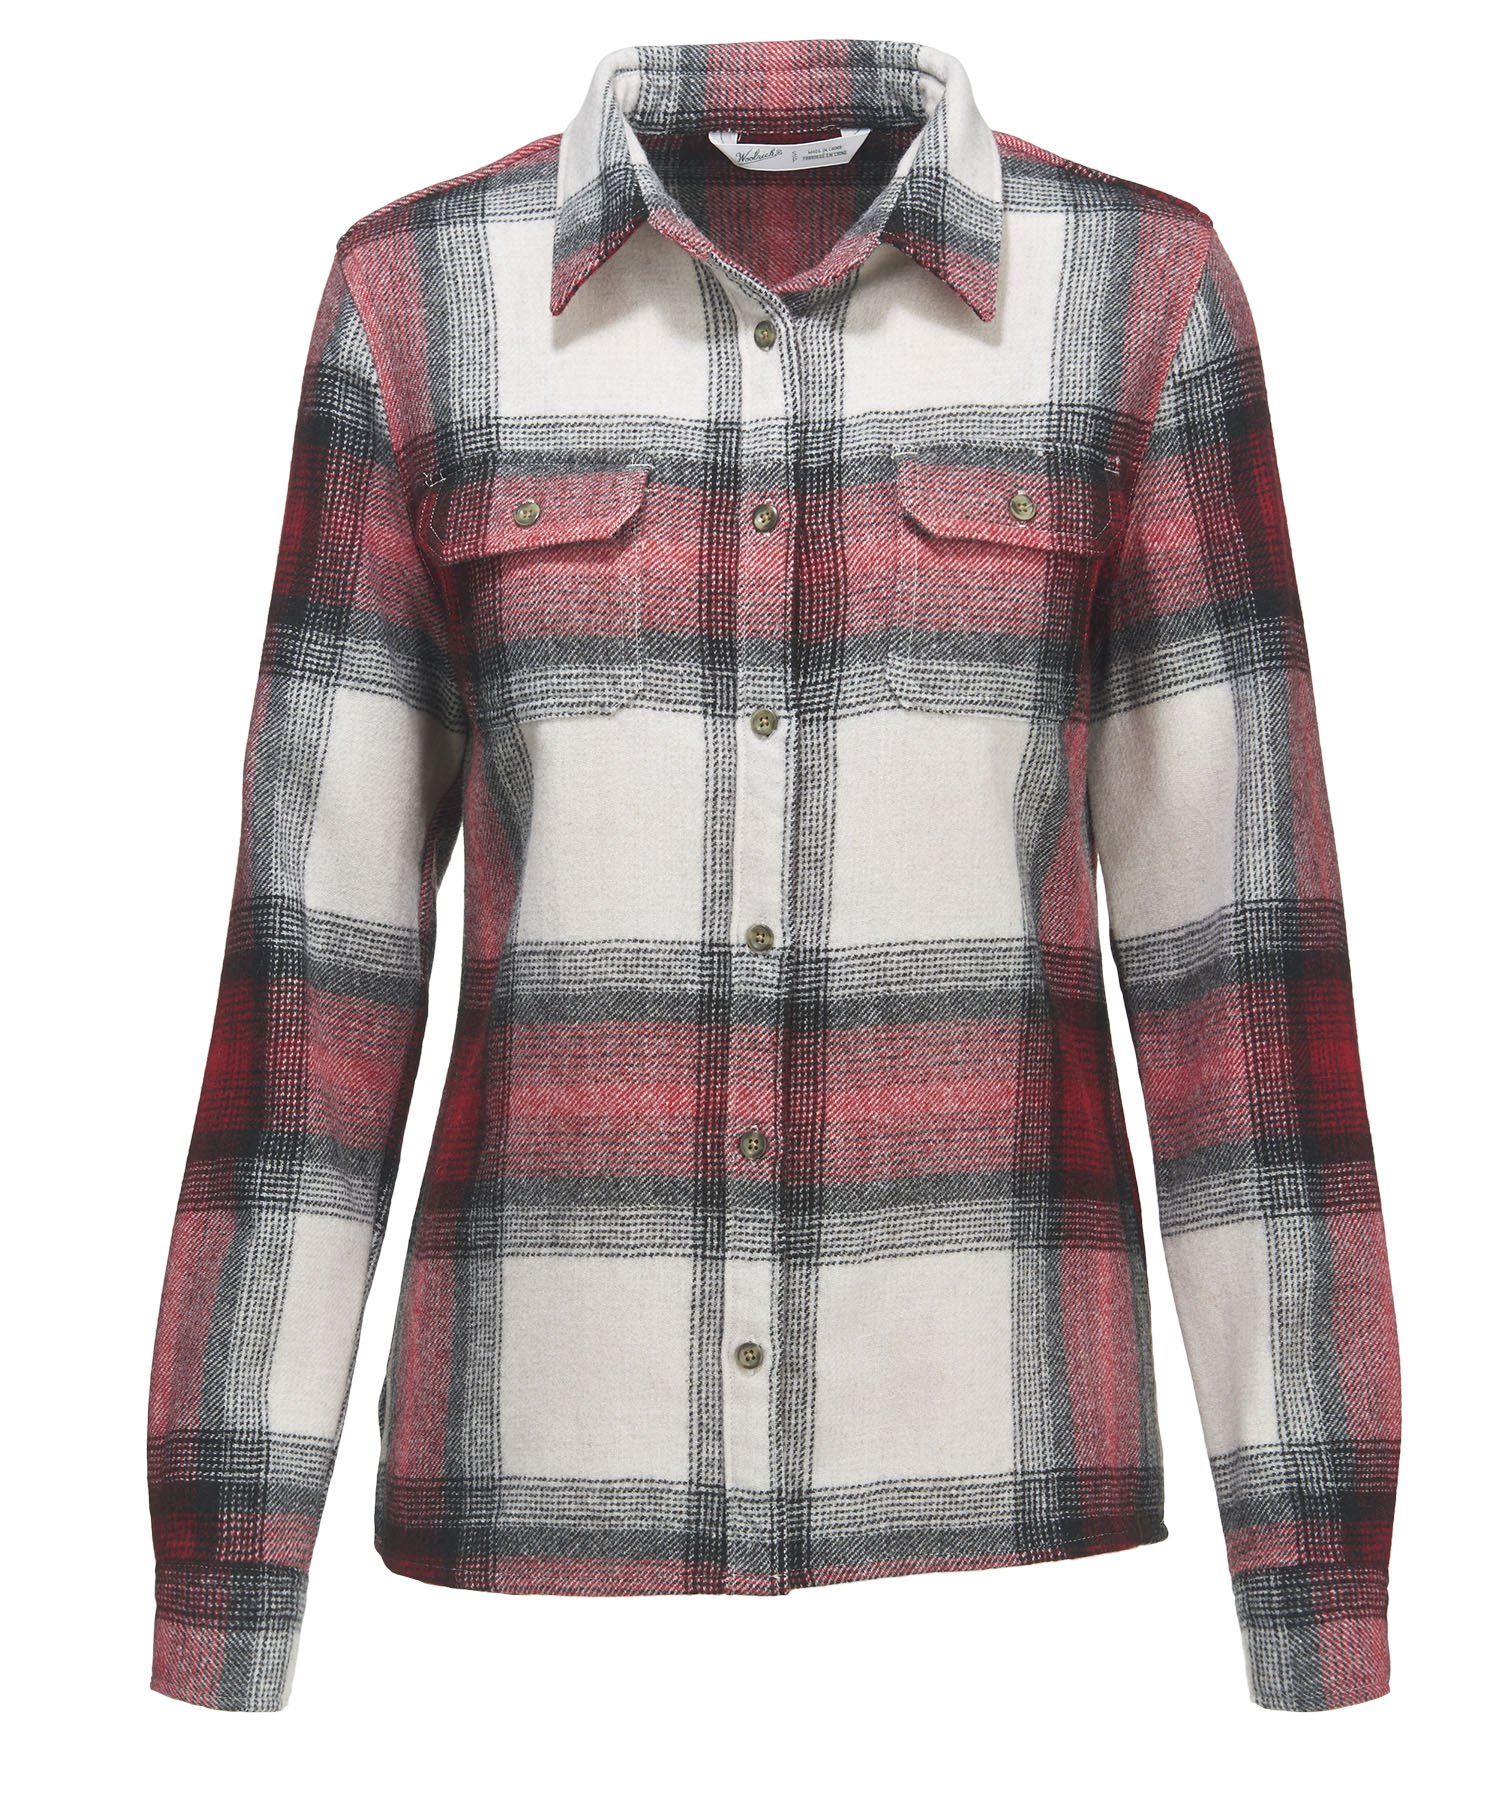 Woolrich Women's Bering Plaid Wool Shirt, Old Red (Red), Size L